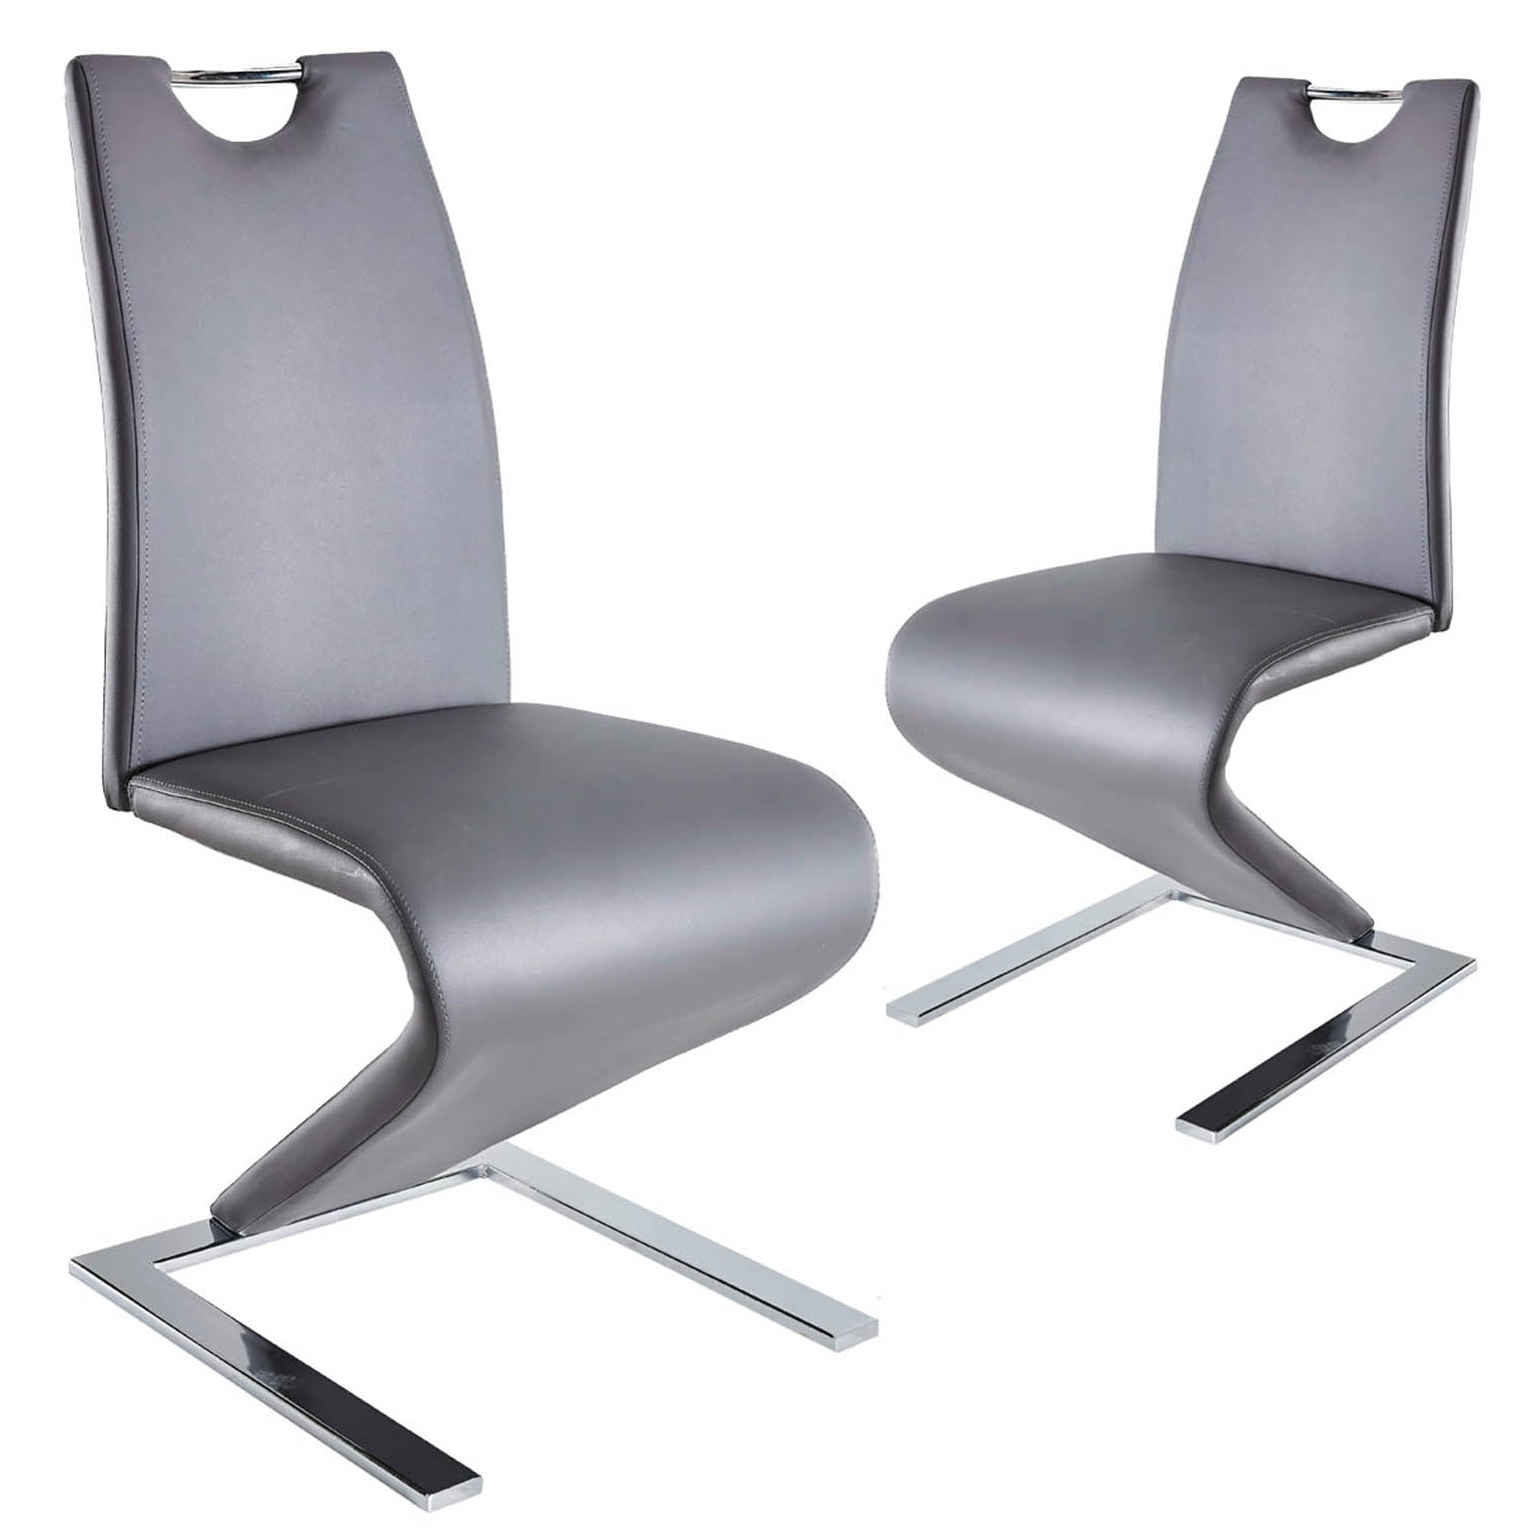 Lot de 2 chaises design gris ZAYA